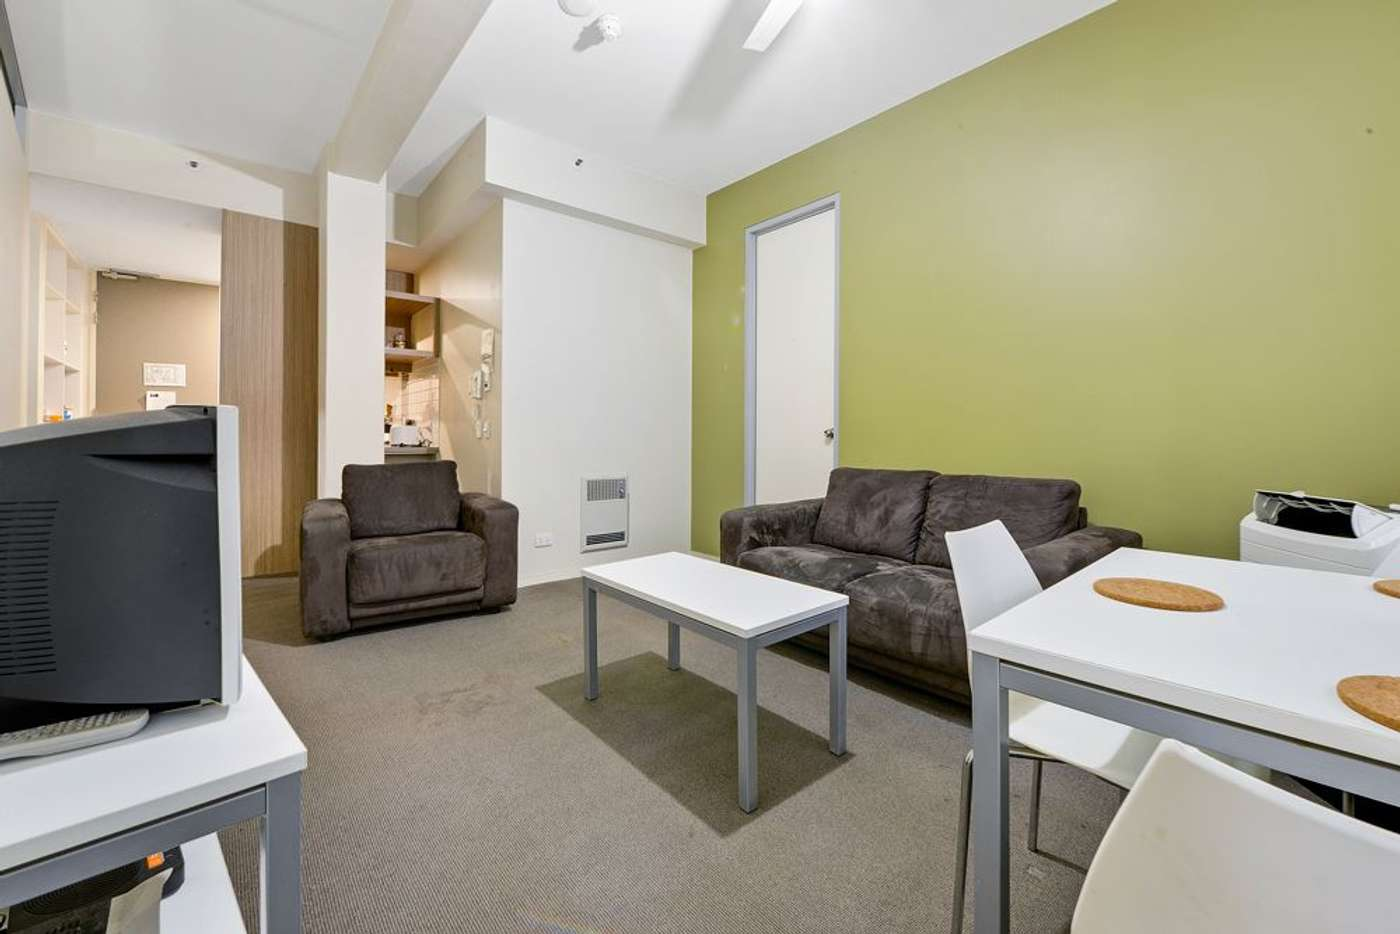 Sixth view of Homely apartment listing, 905/23 King William Street, Adelaide SA 5000